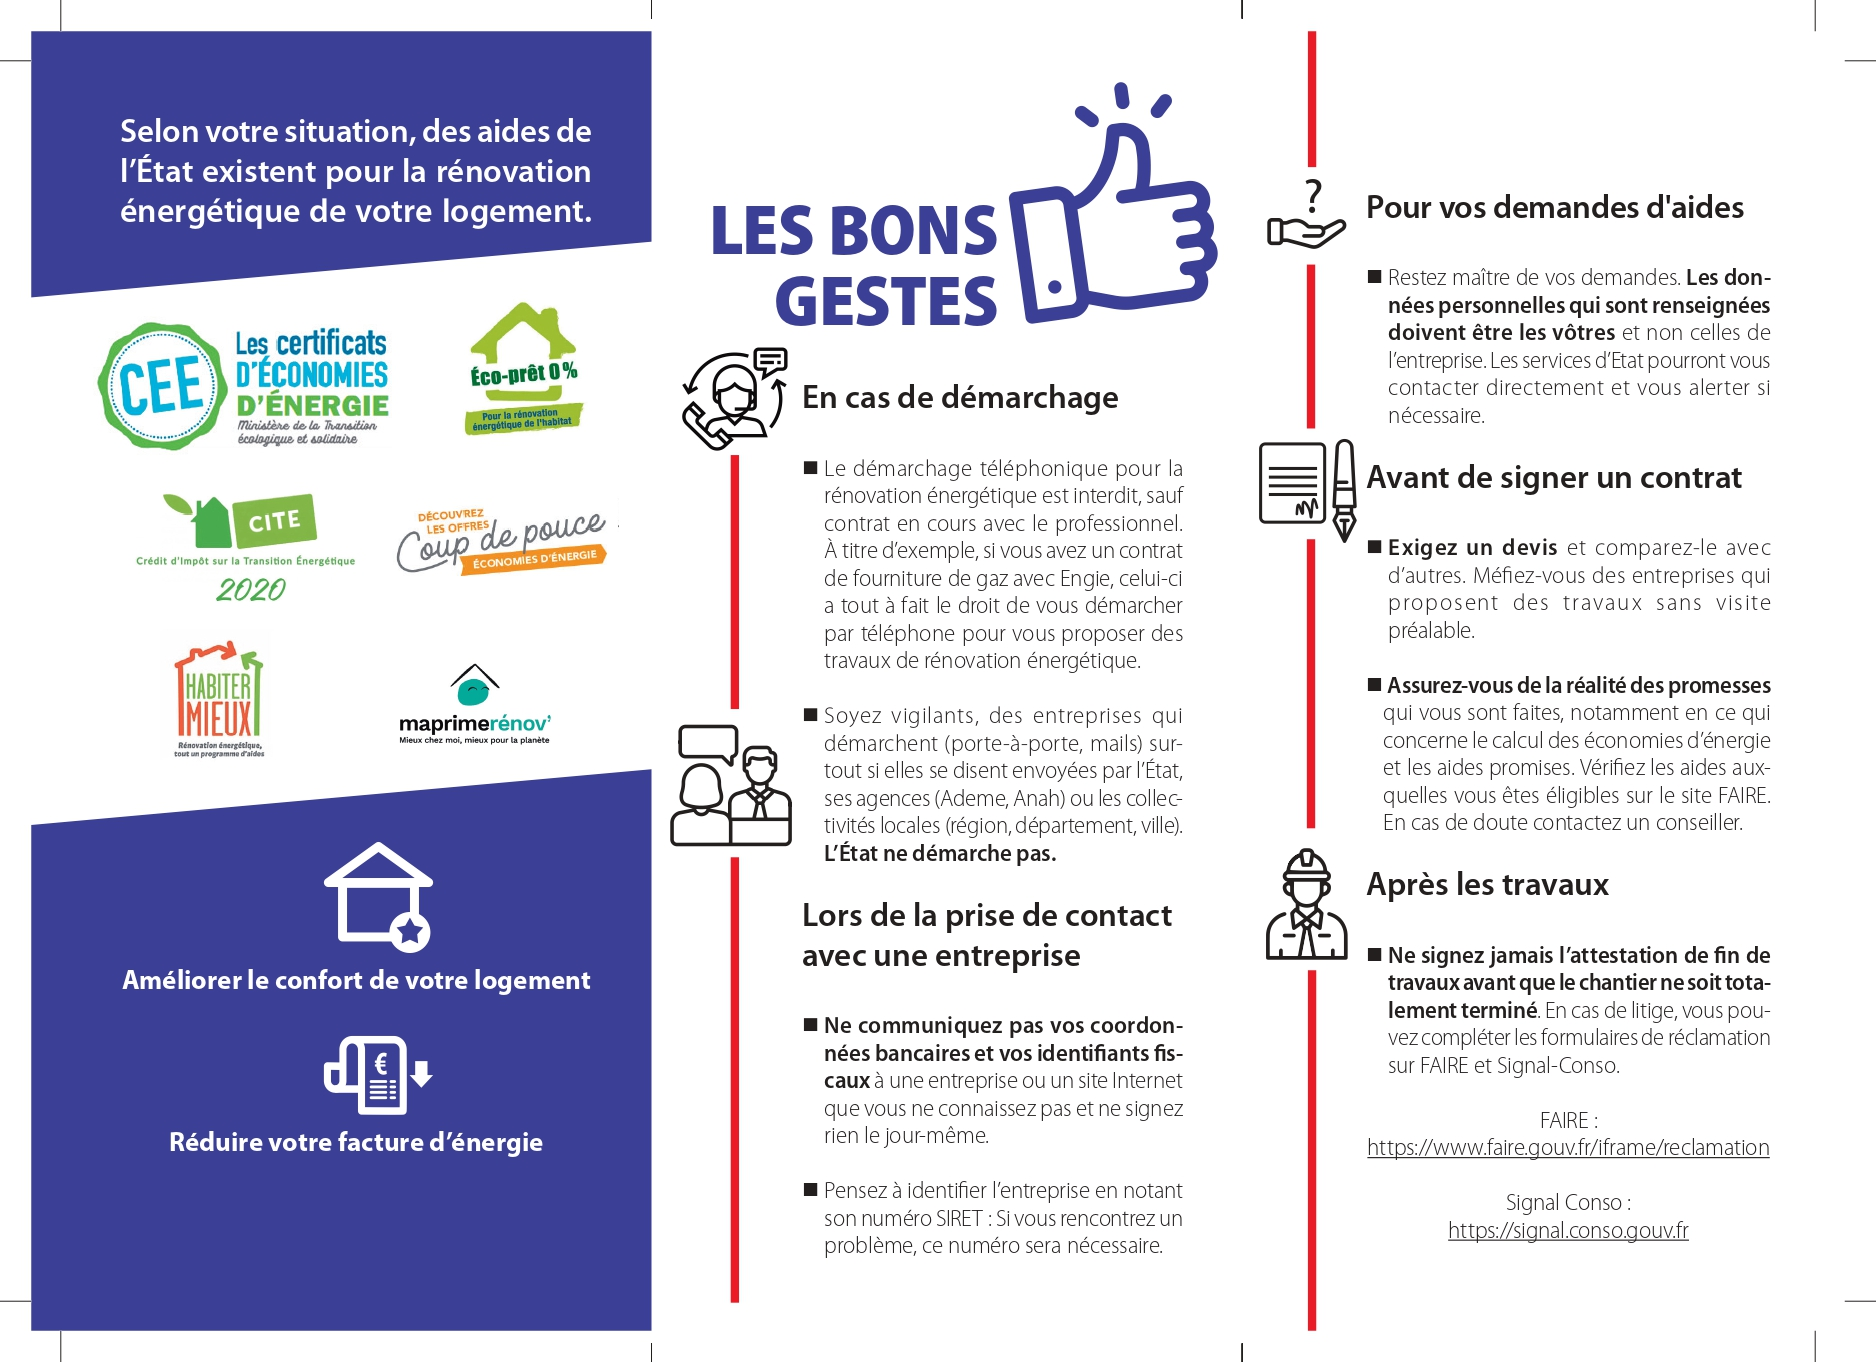 Infographie - Prevention fraude renovation energetique - v2_page-0002.jpg